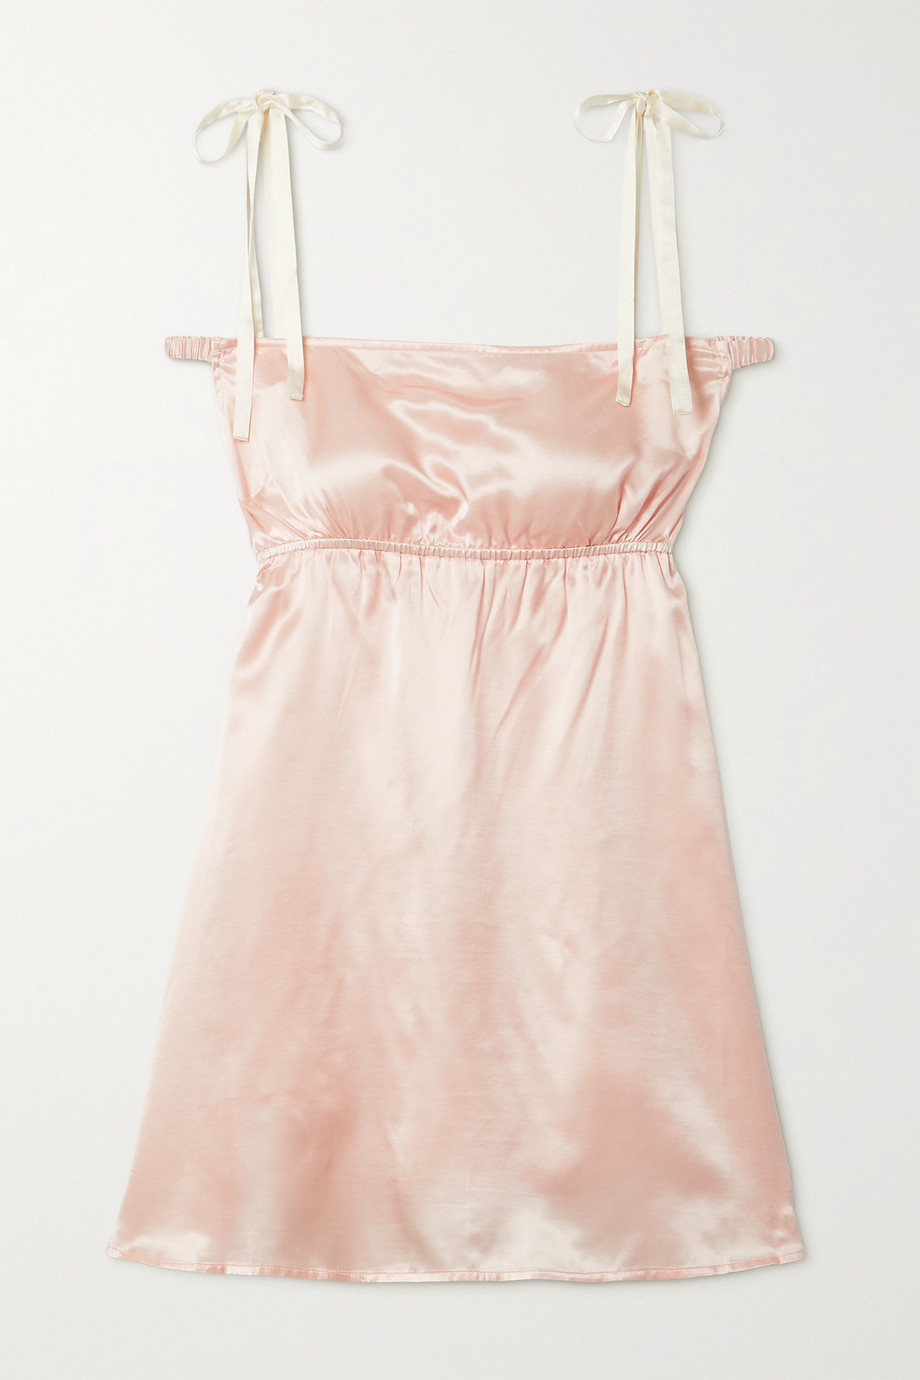 MORGAN LANE Hanna satin chemise